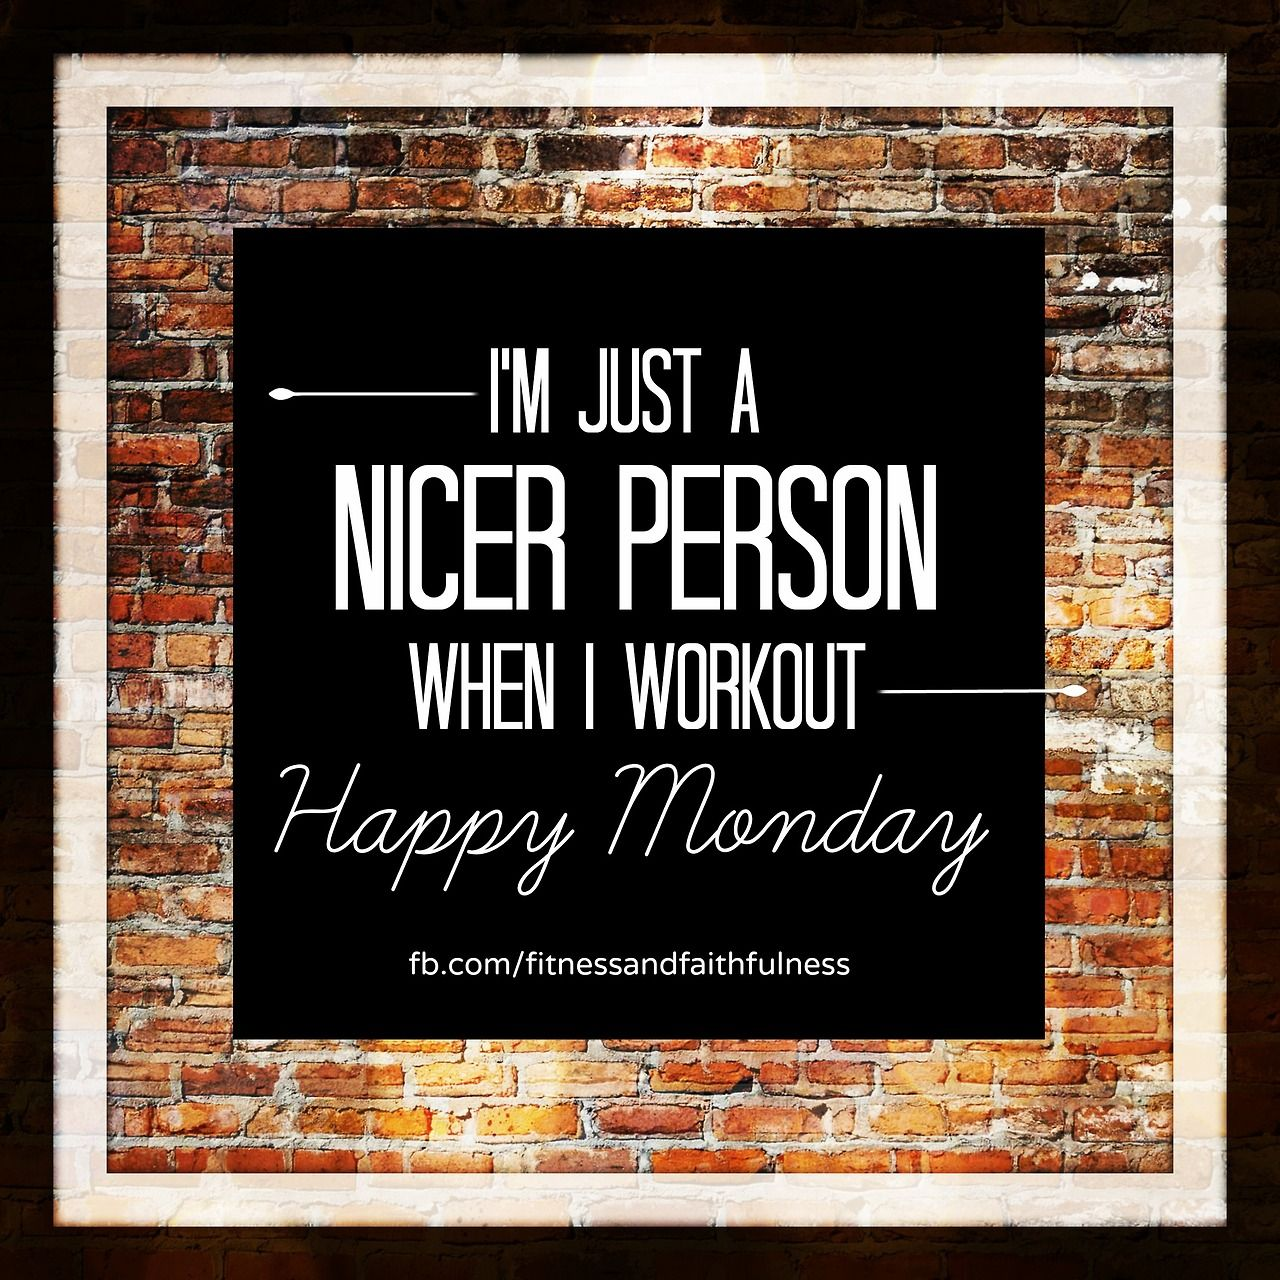 I'm just a NICER person when I workout. HAPPY MONDAY